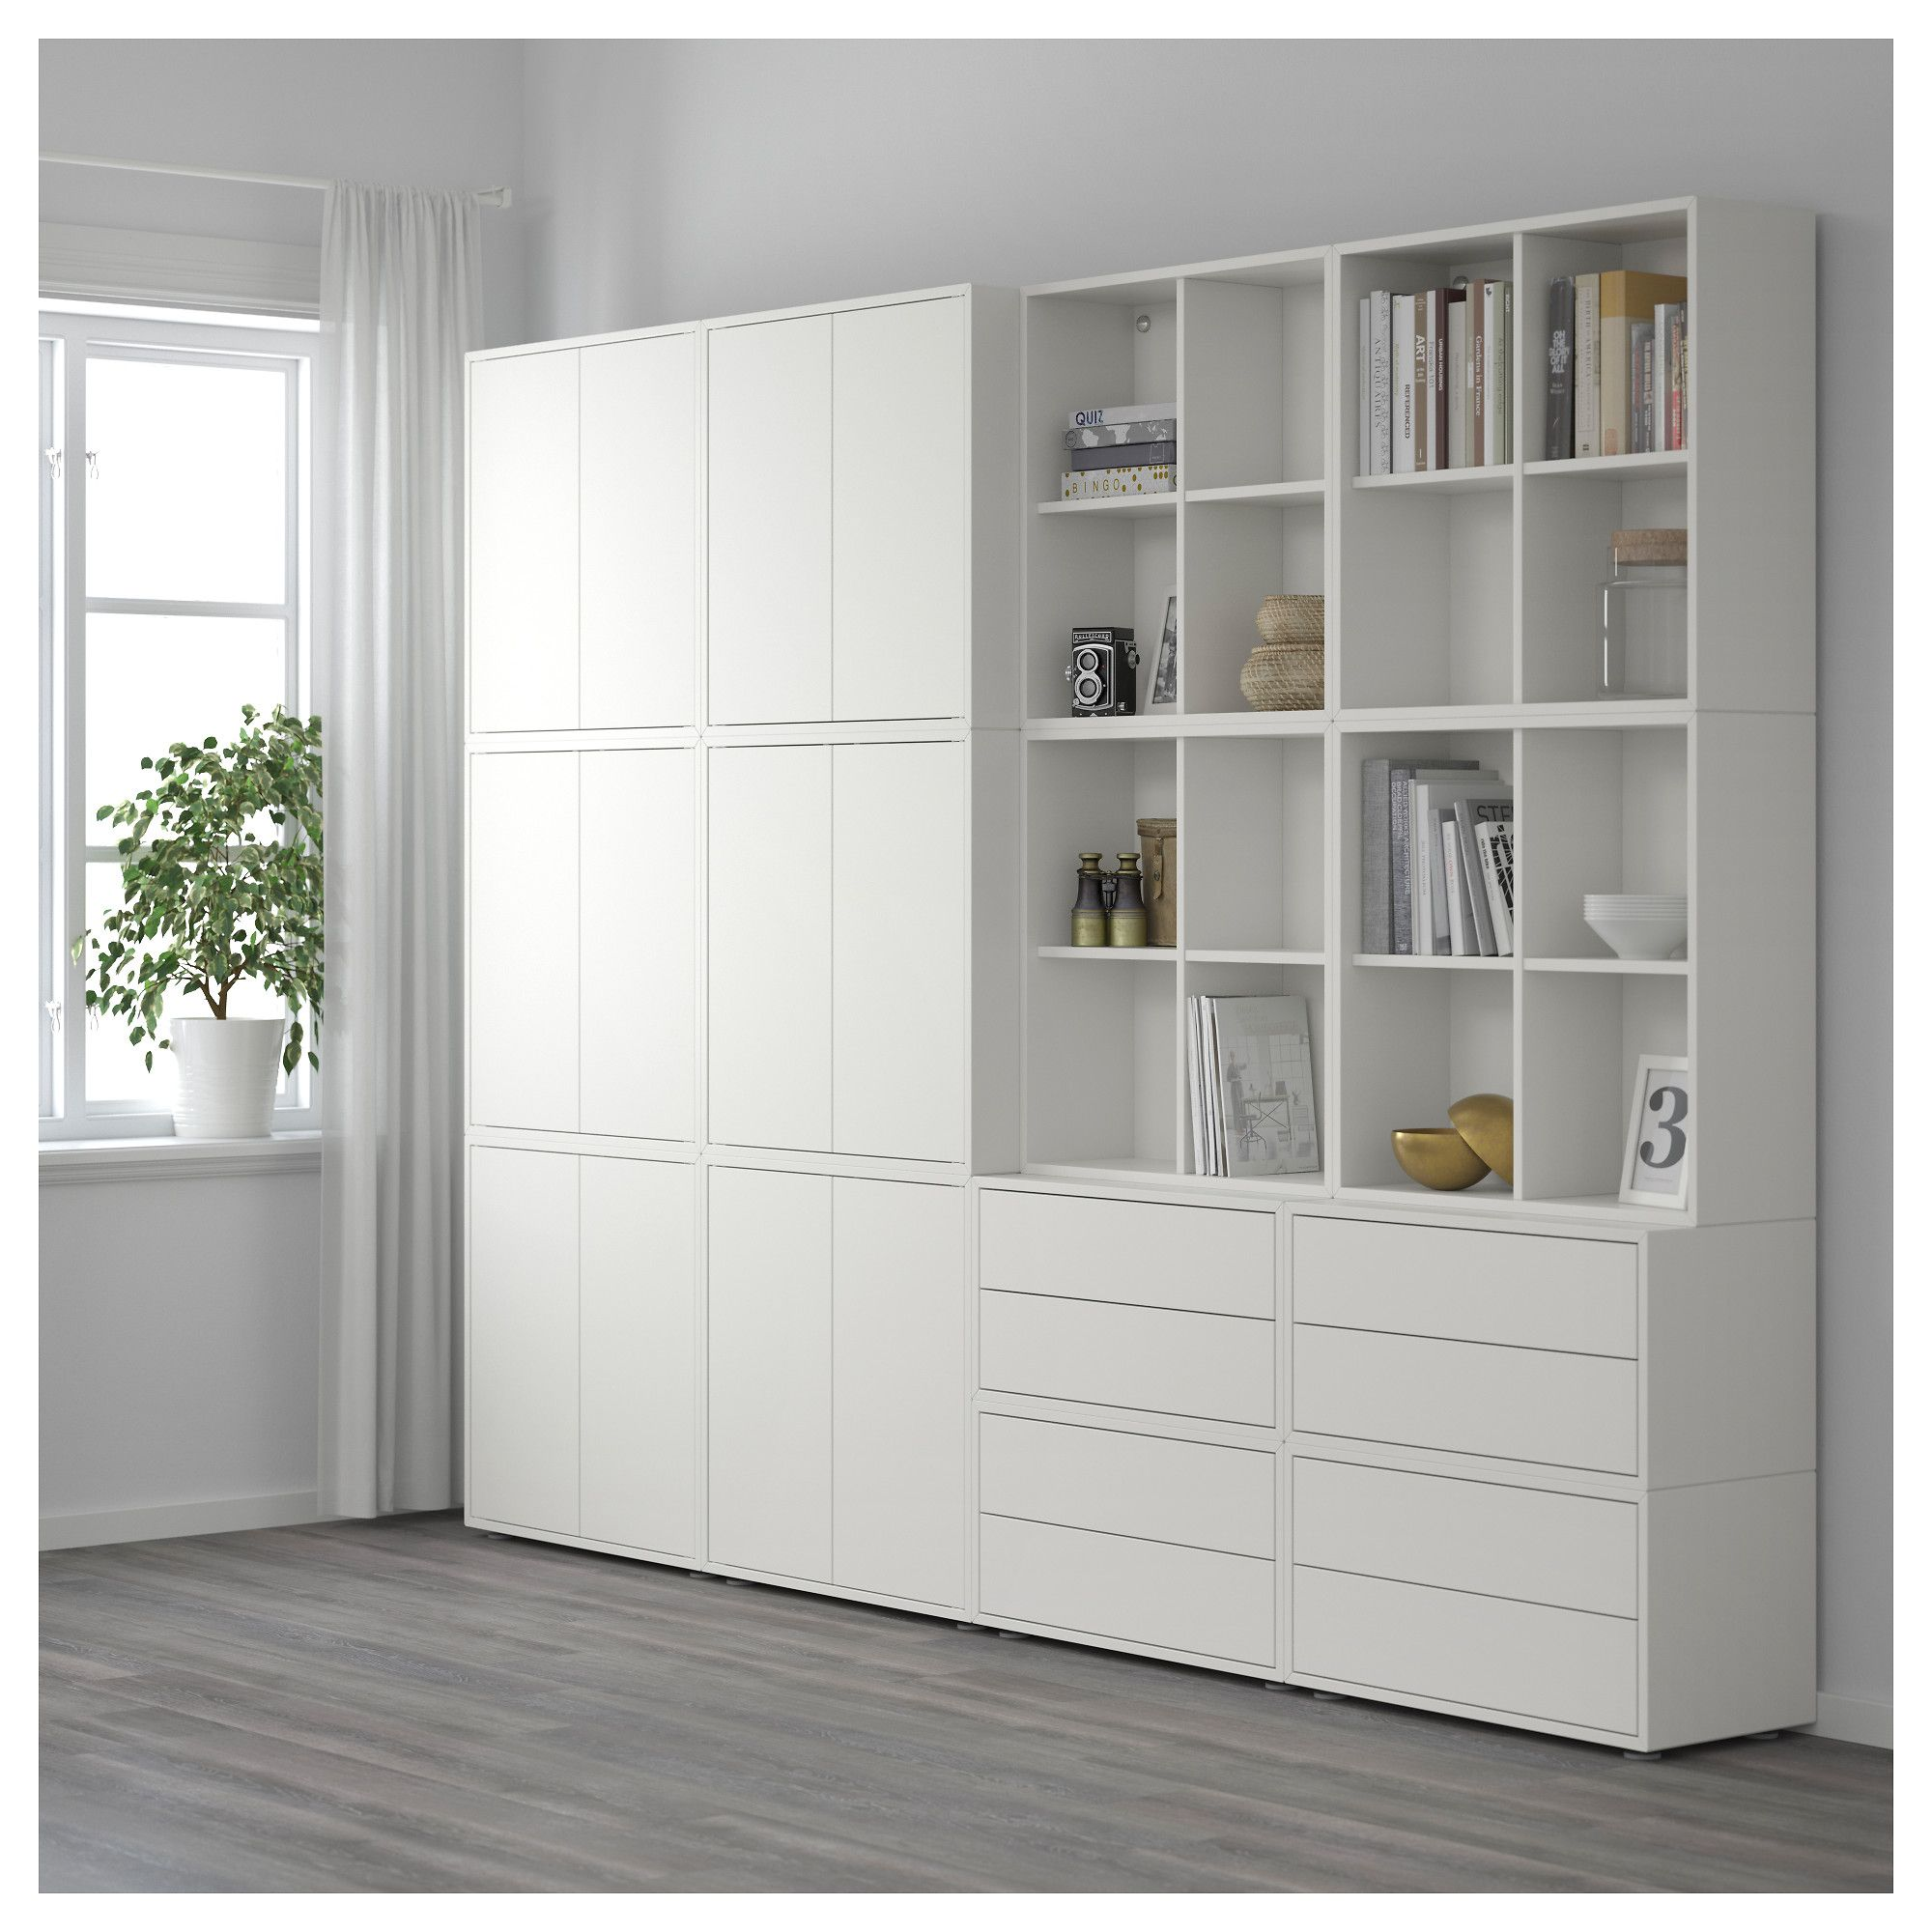 Furniture Home Furnishings Find Your Inspiration White Storage Cabinets Eket Ikea Home #white #living #room #storage #cabinets